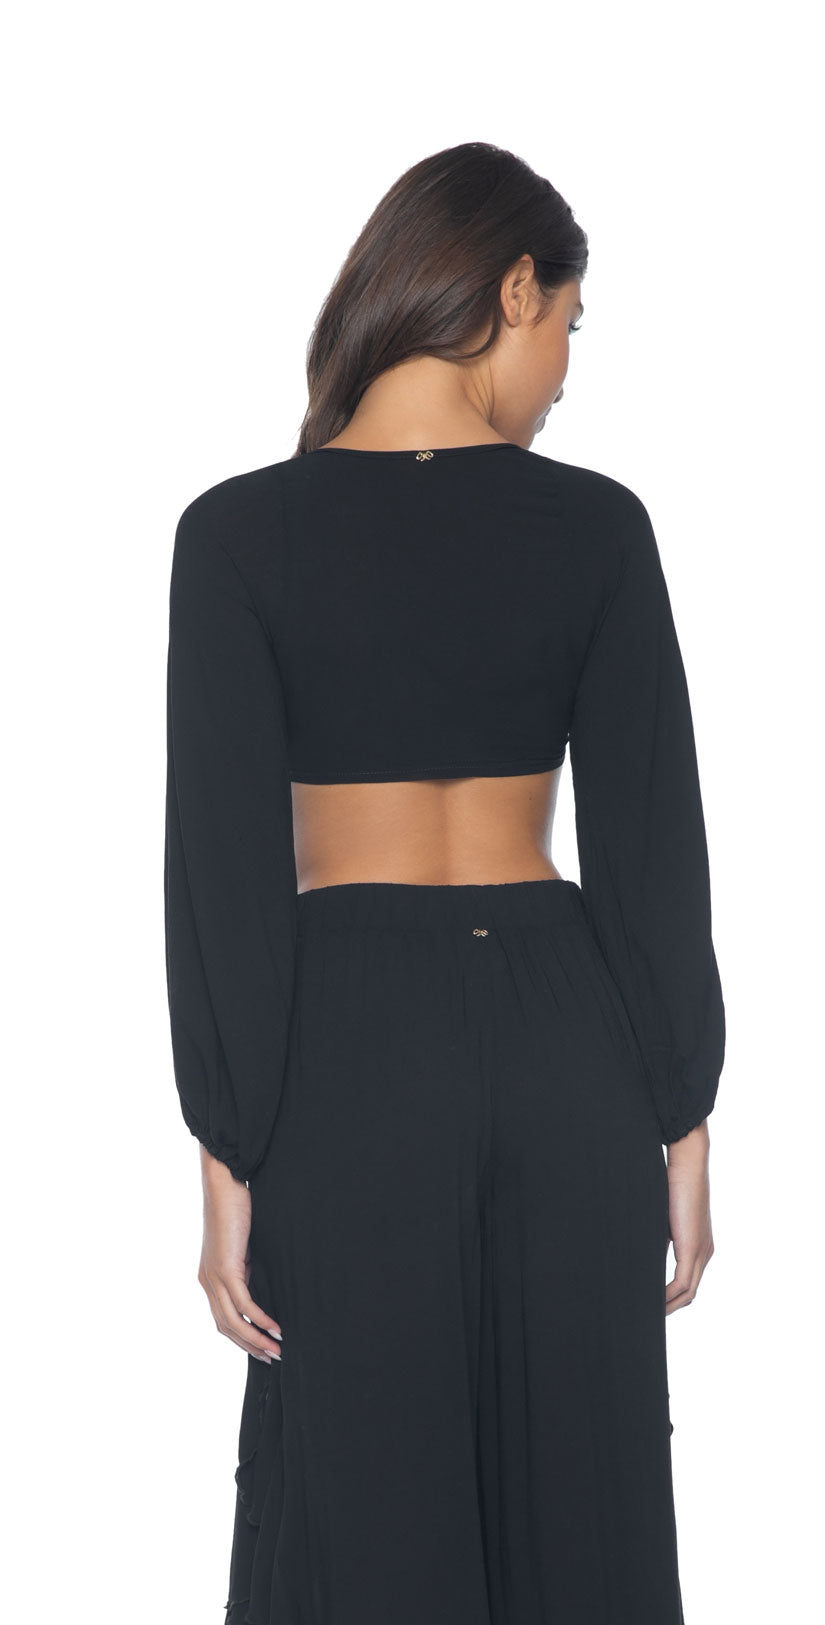 The PilyQ Midnight Halsey Tie Top back